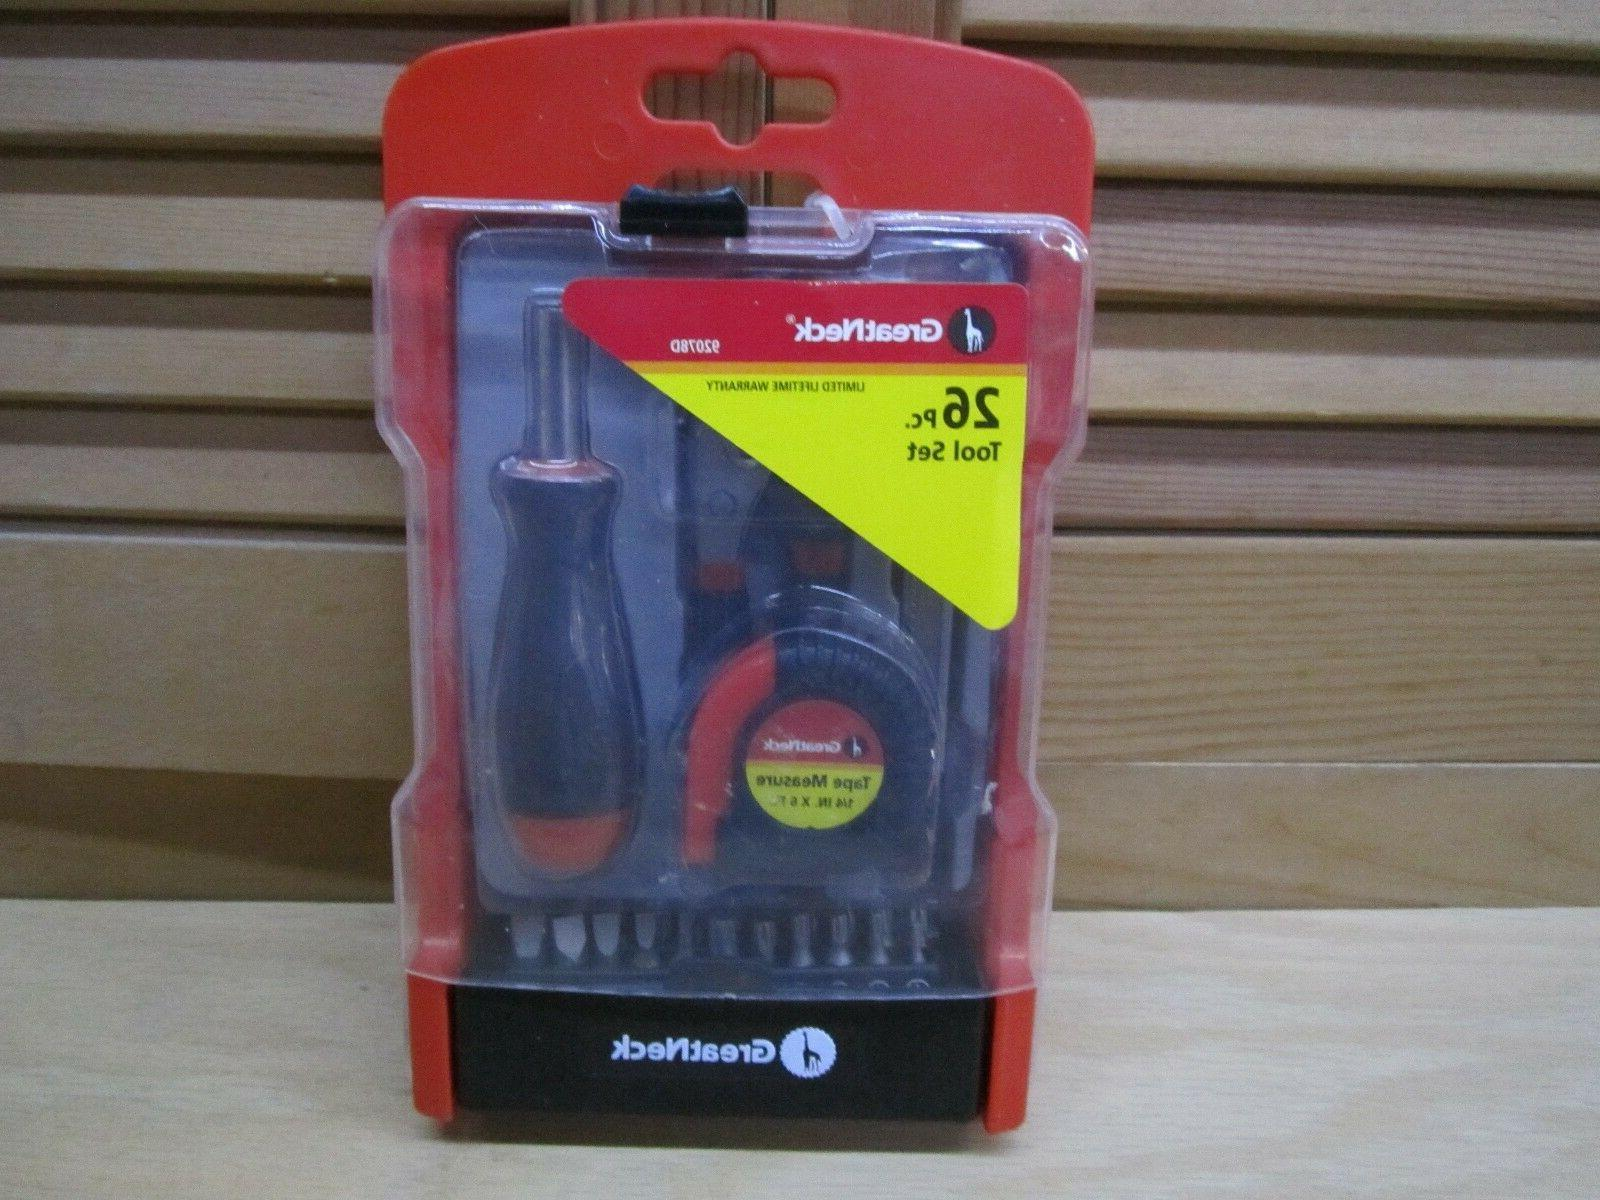 GREAT NECK 26-PIECE TOOL SET WITH SCREWDRIVER PLIERS KNIFE T